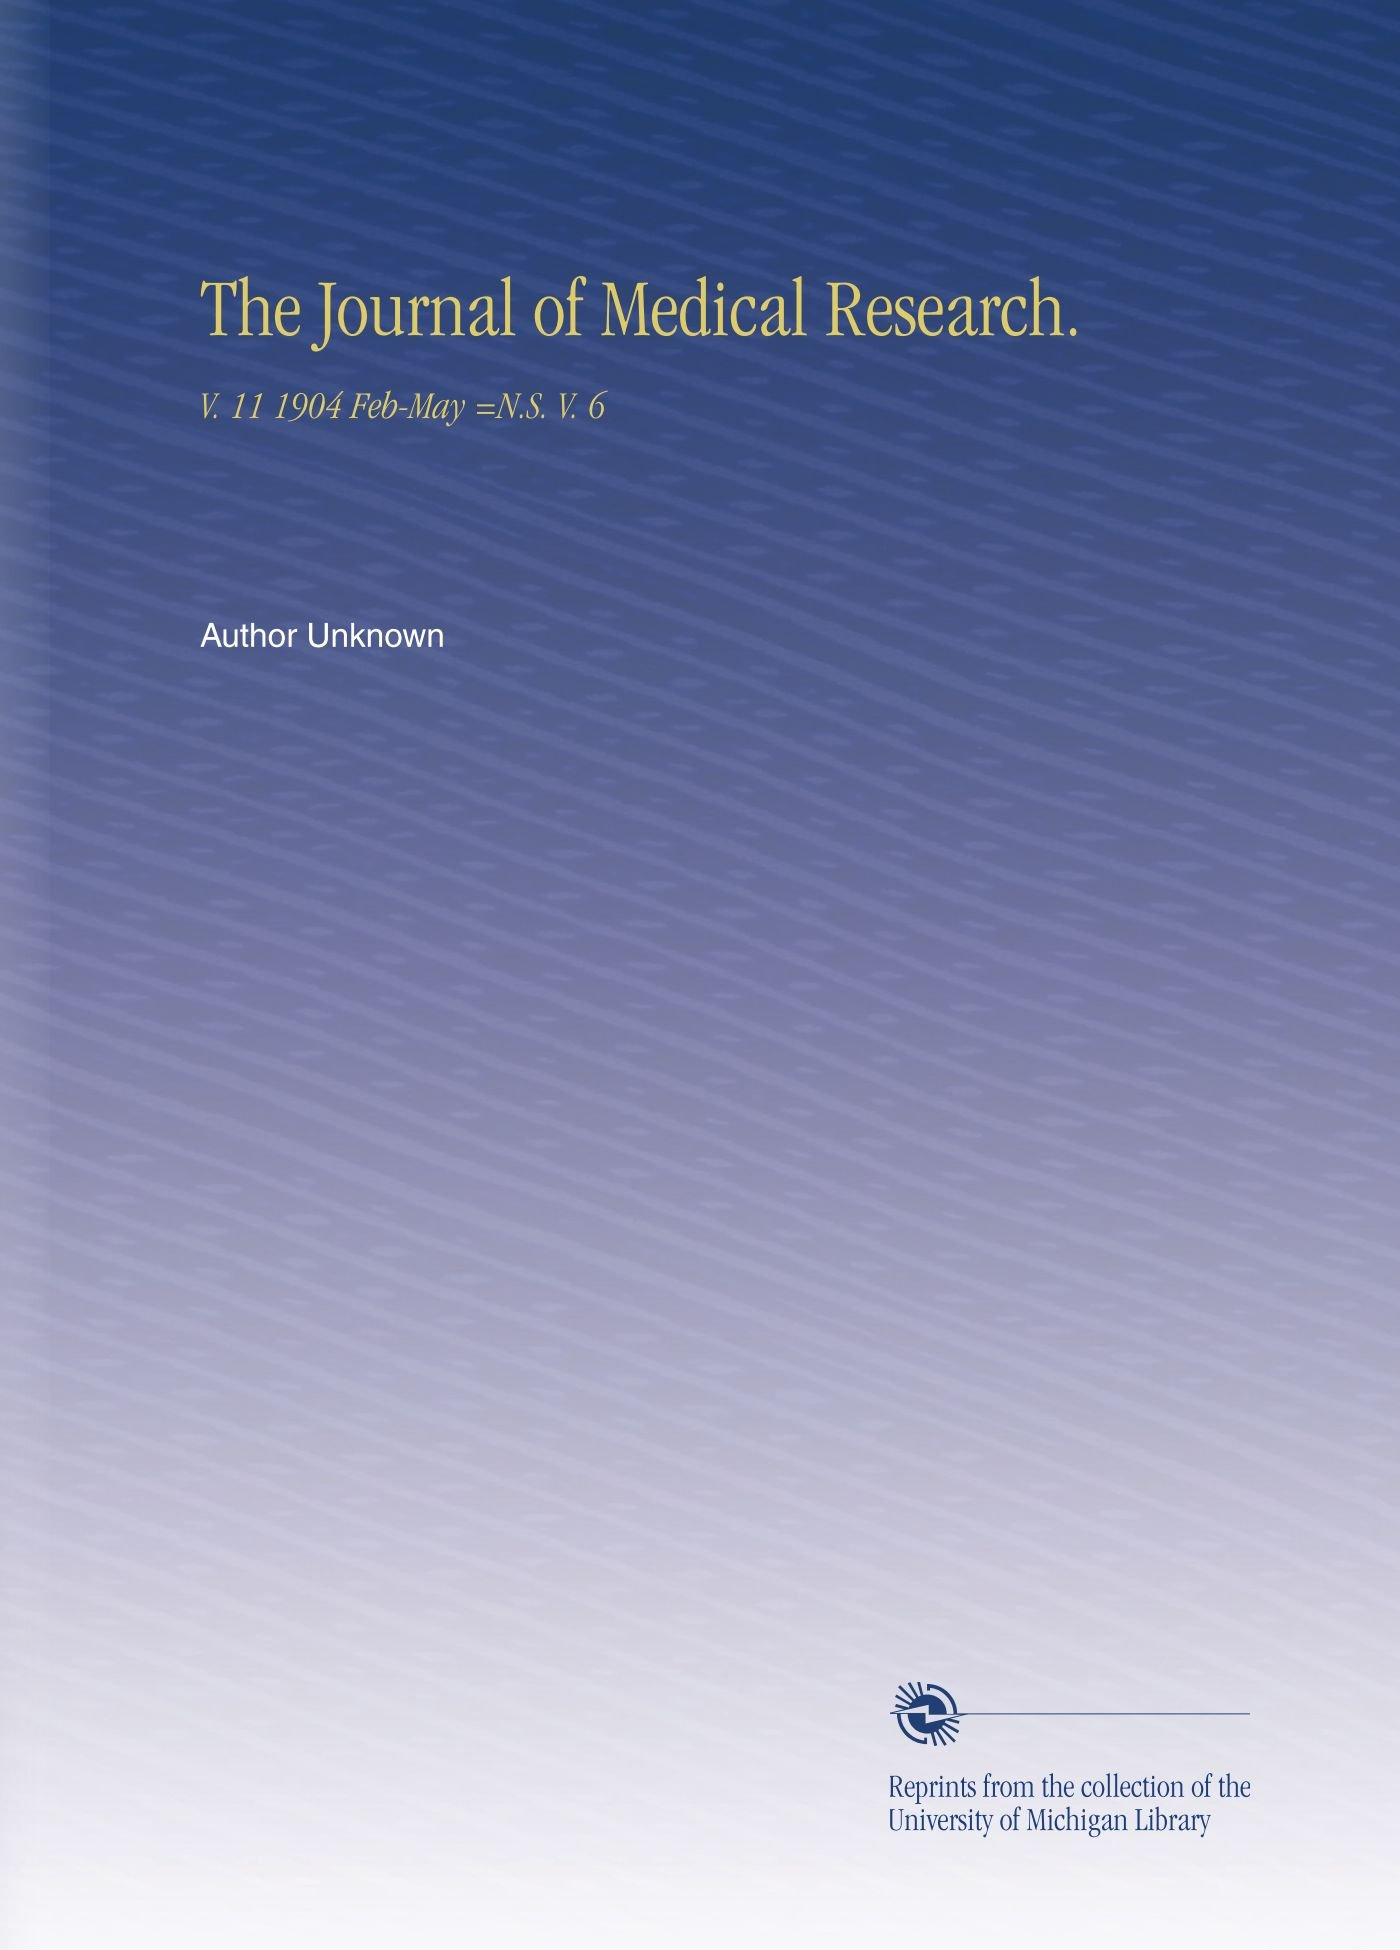 Download The Journal of Medical Research.: V. 11 1904 Feb-May =N.S. V. 6 ebook